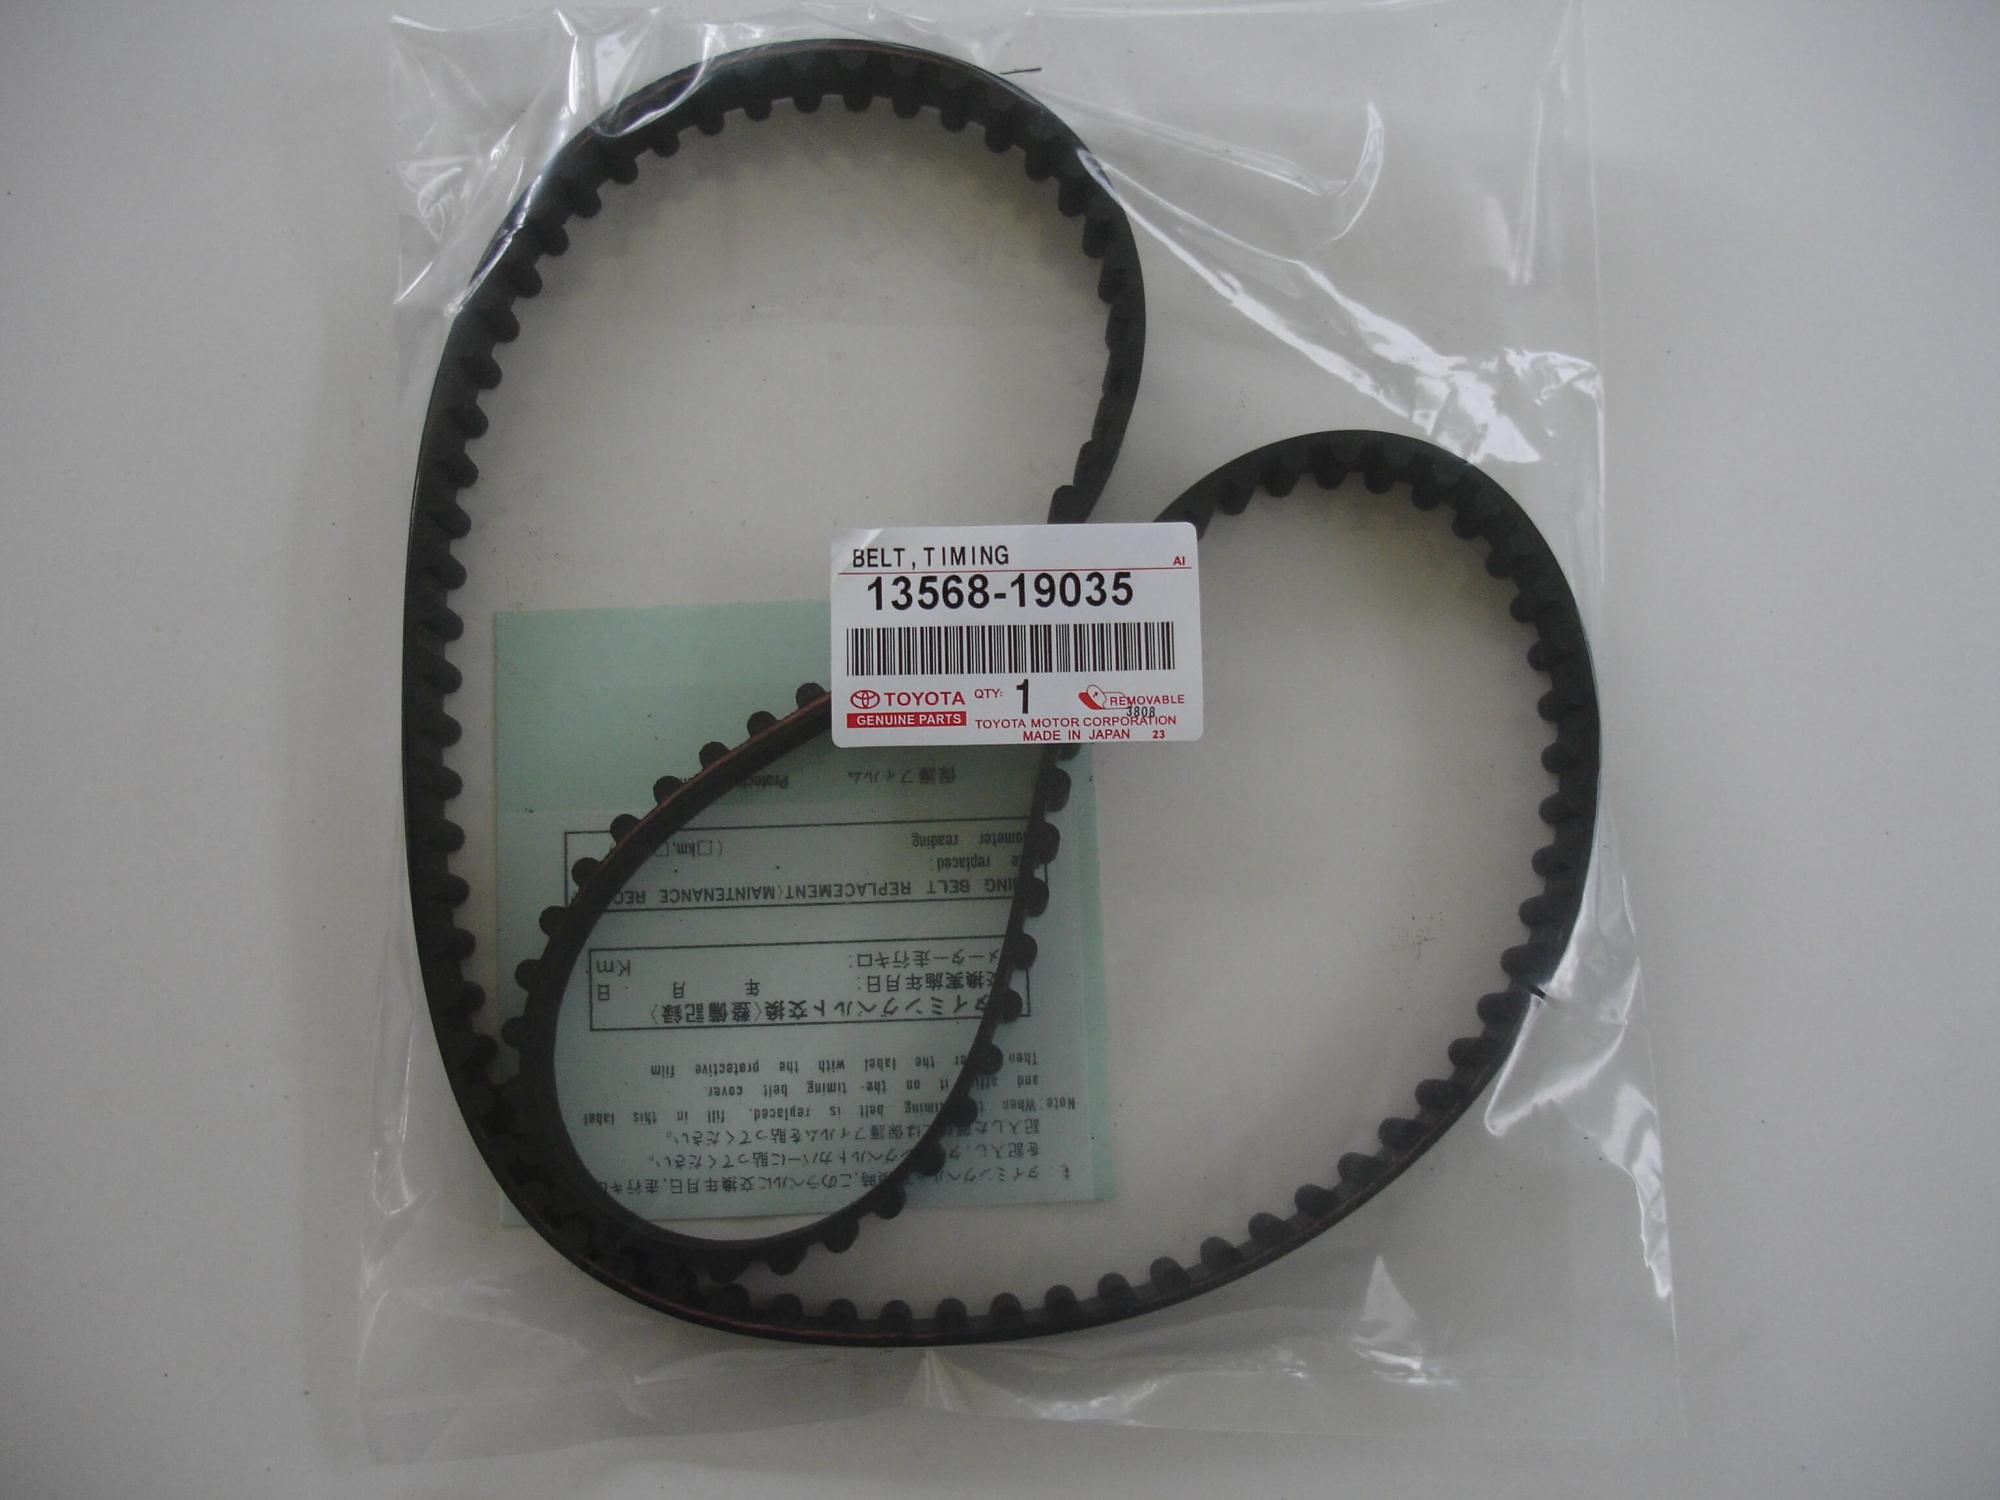 hight resolution of toyota oem 4a ge timing belt 13568 19035 silvertop 92 95 20 valve